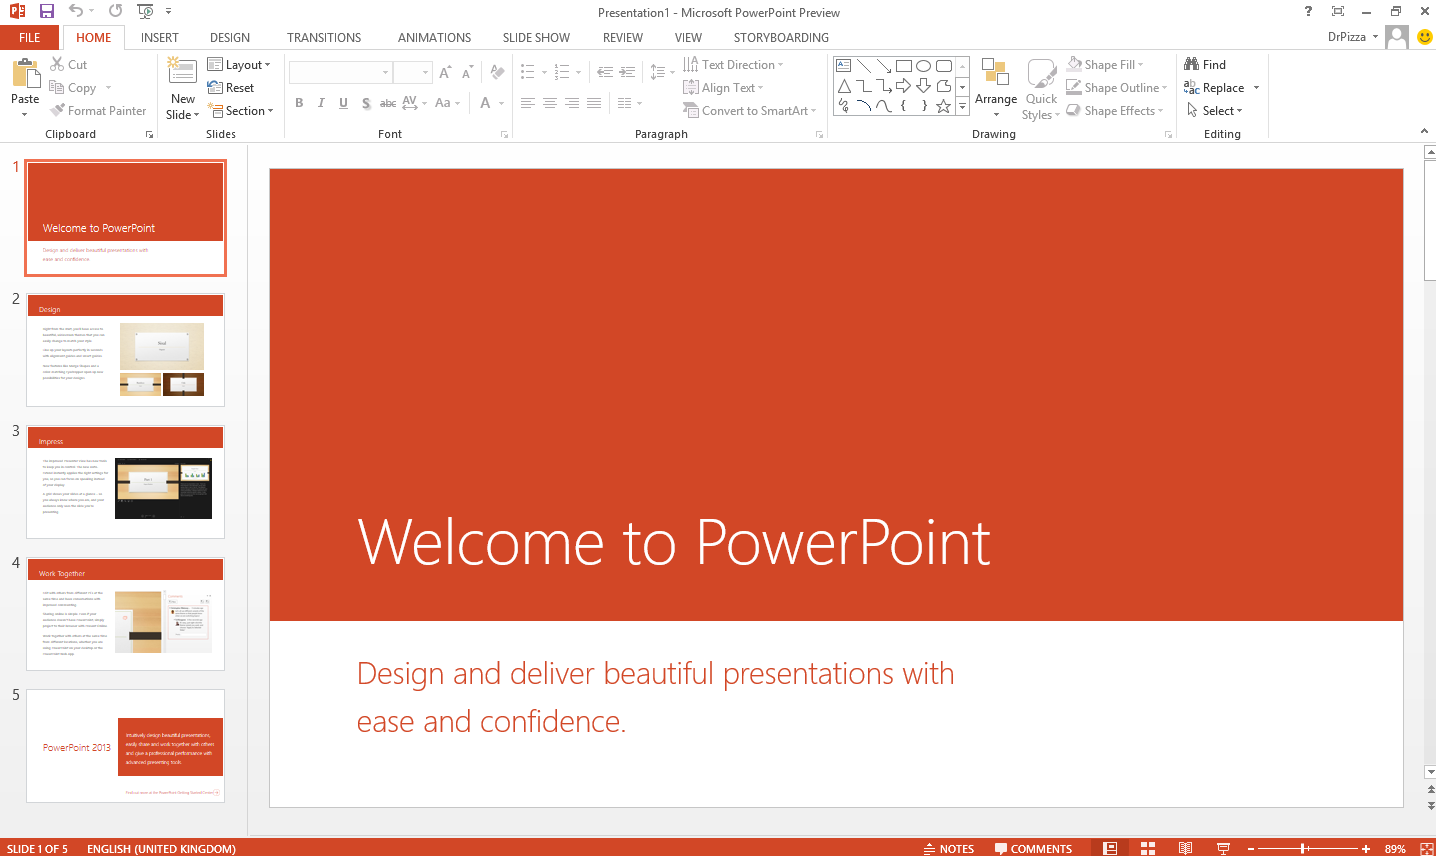 What's new in PowerPoint 2013